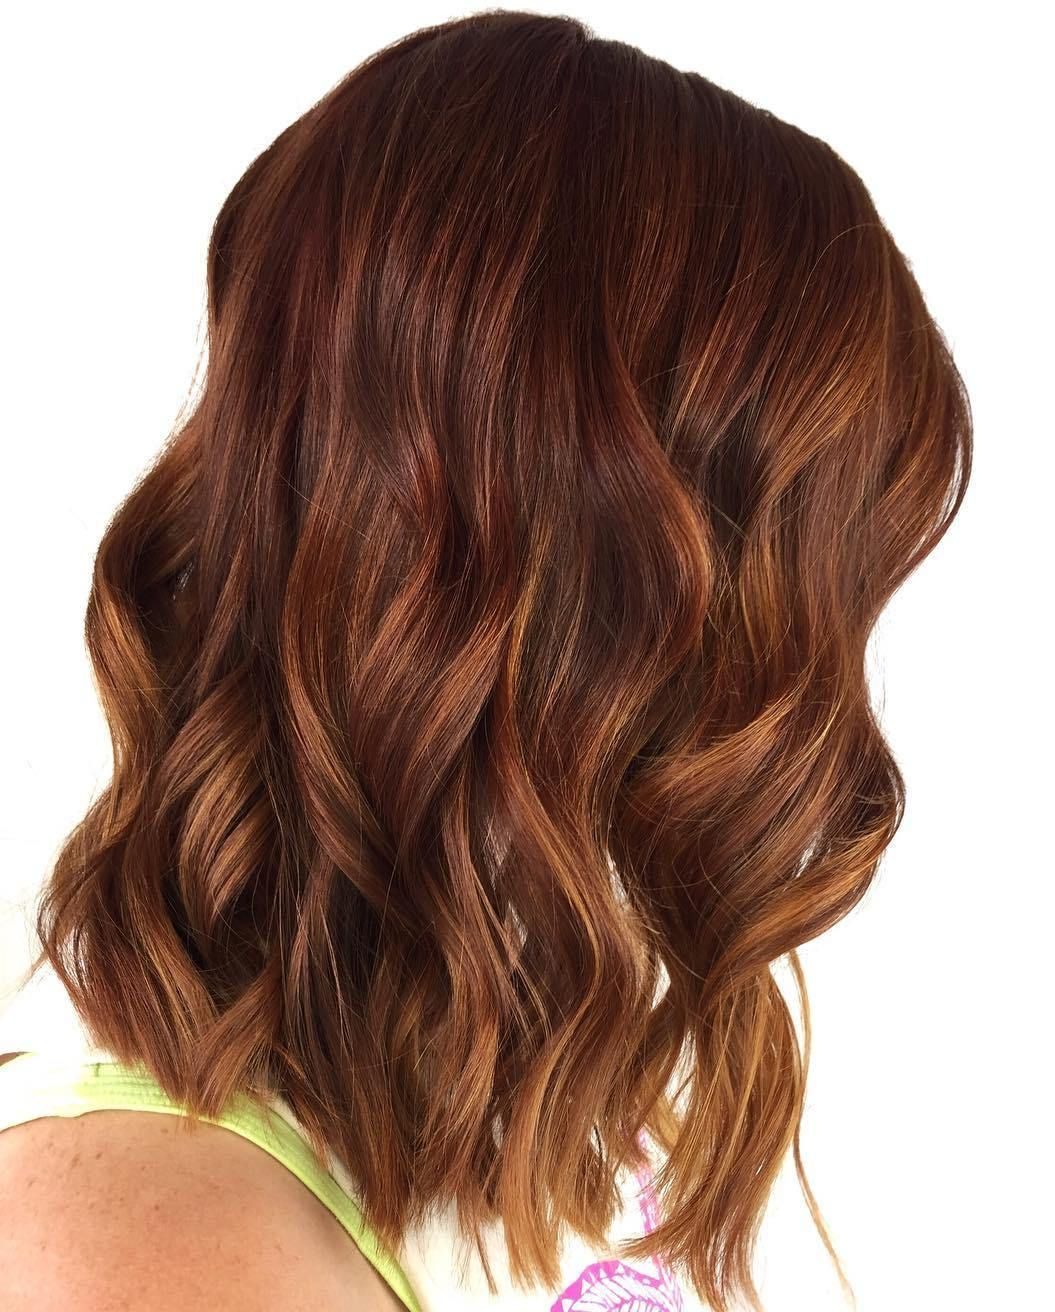 Chestnut Hair Color With Blonde Highlights Best Hair Color Gray